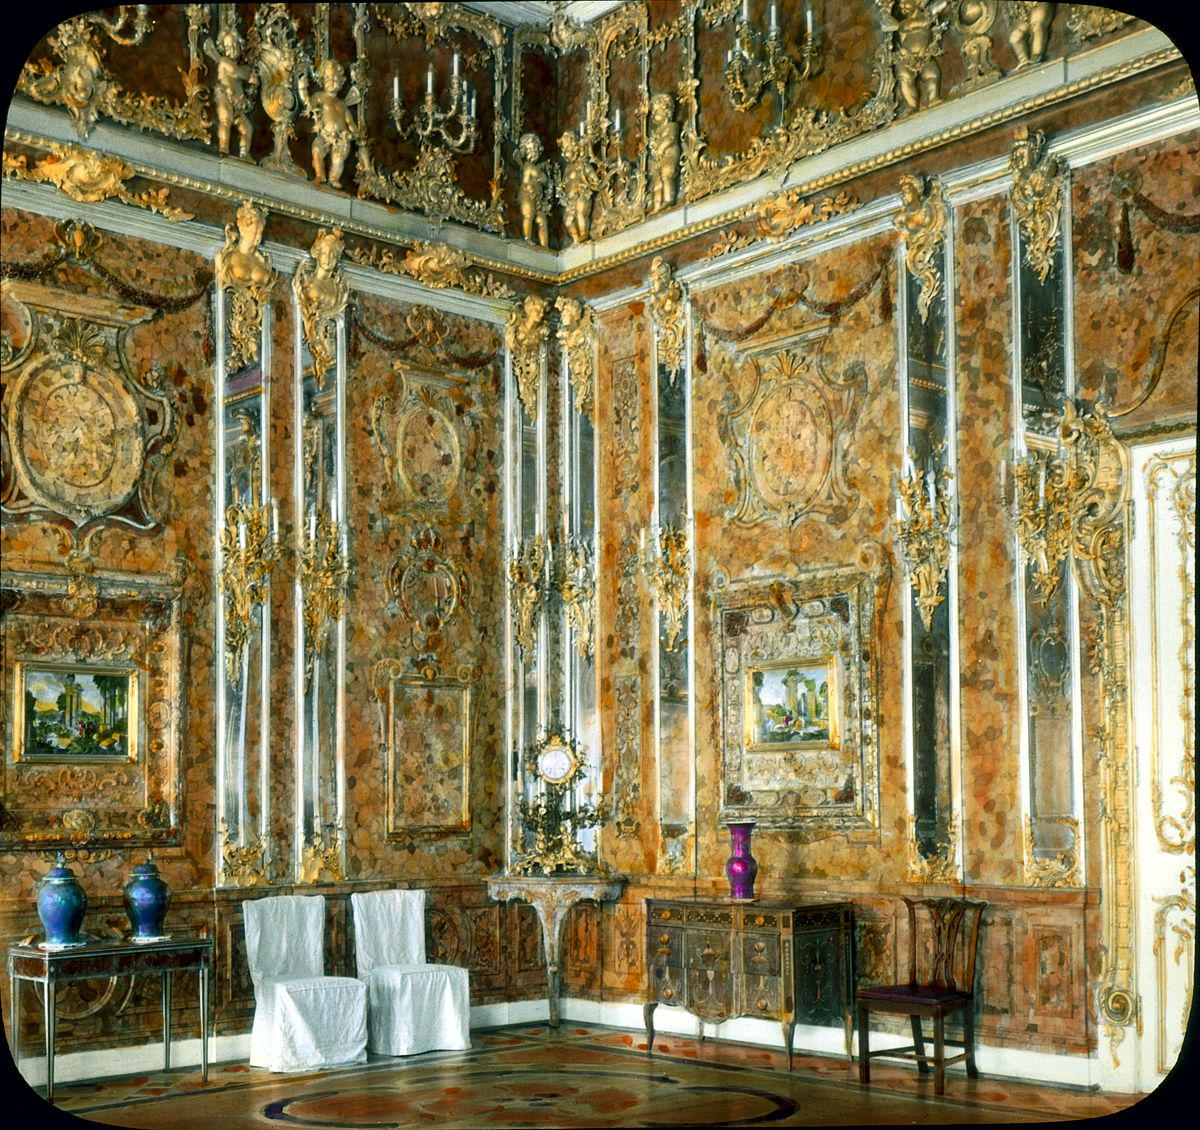 Amber room wikipedia for Decoration interieur original